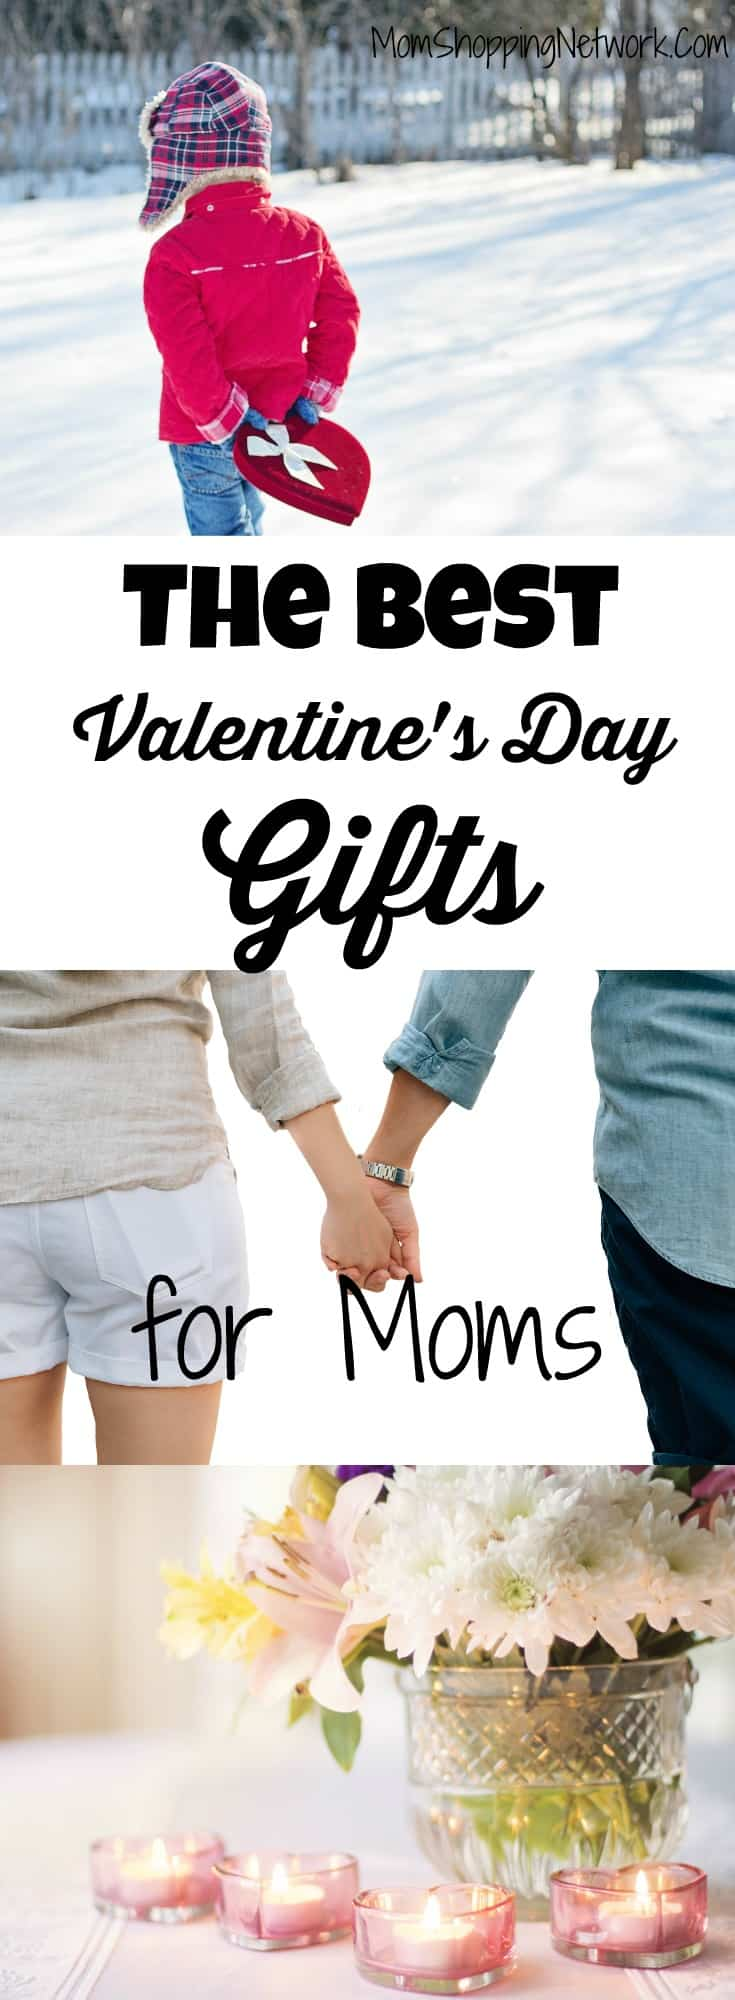 These are The Best Valentine's Day Gifts for Moms. #valentinesday #valentinesdaygifts #giftguideforvalentinesday #gifts #giftsformom #valentinesdaygiftsformom #momshoppingnetwork